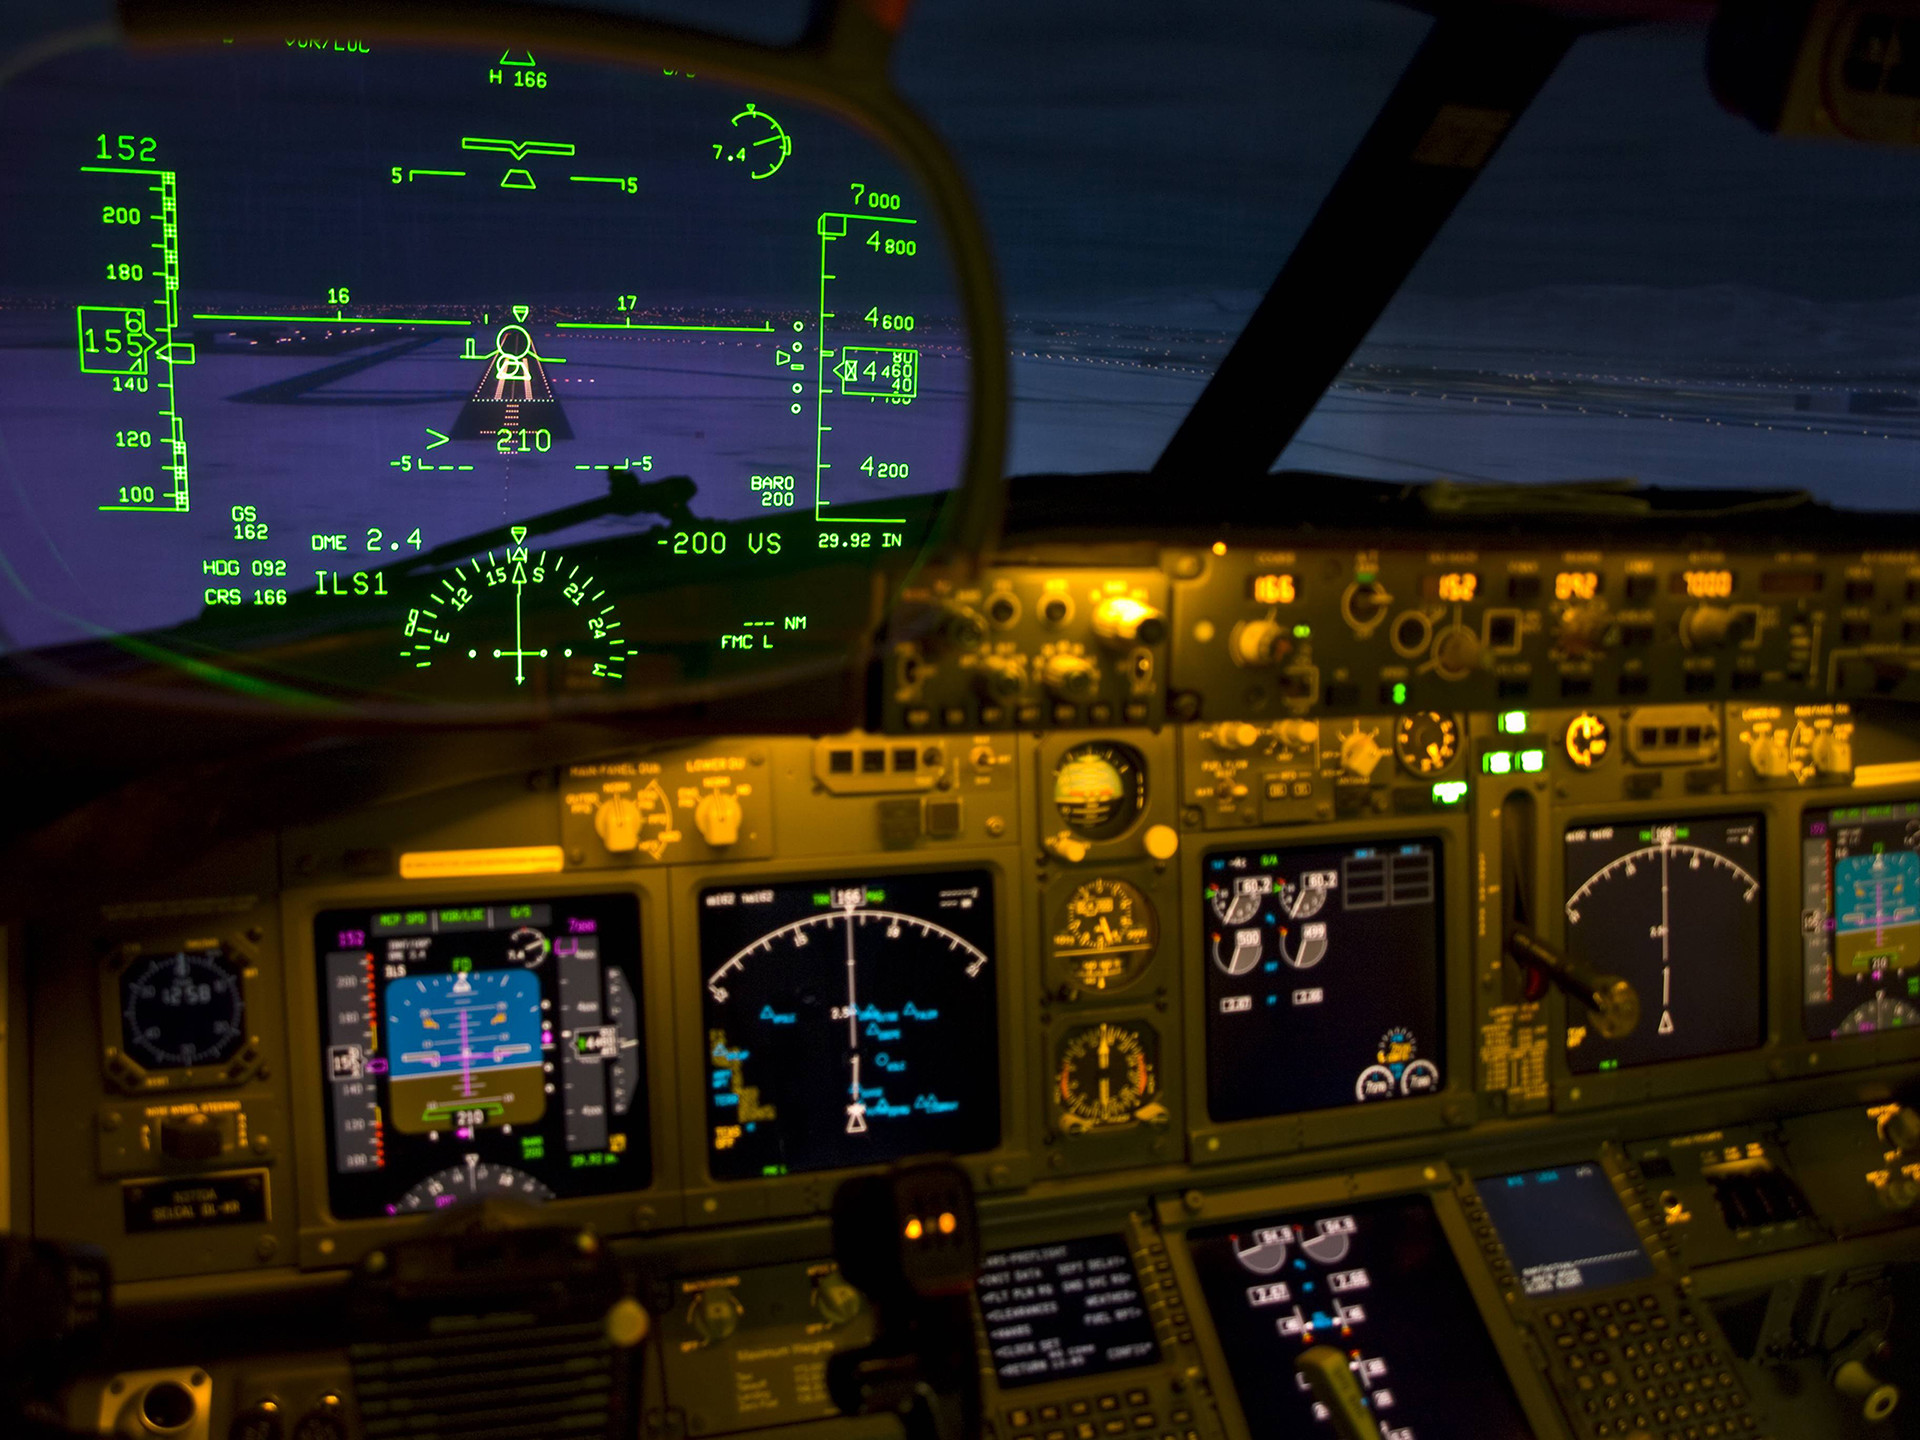 Heads-Up Display Cockpit airplane military wallpaper background